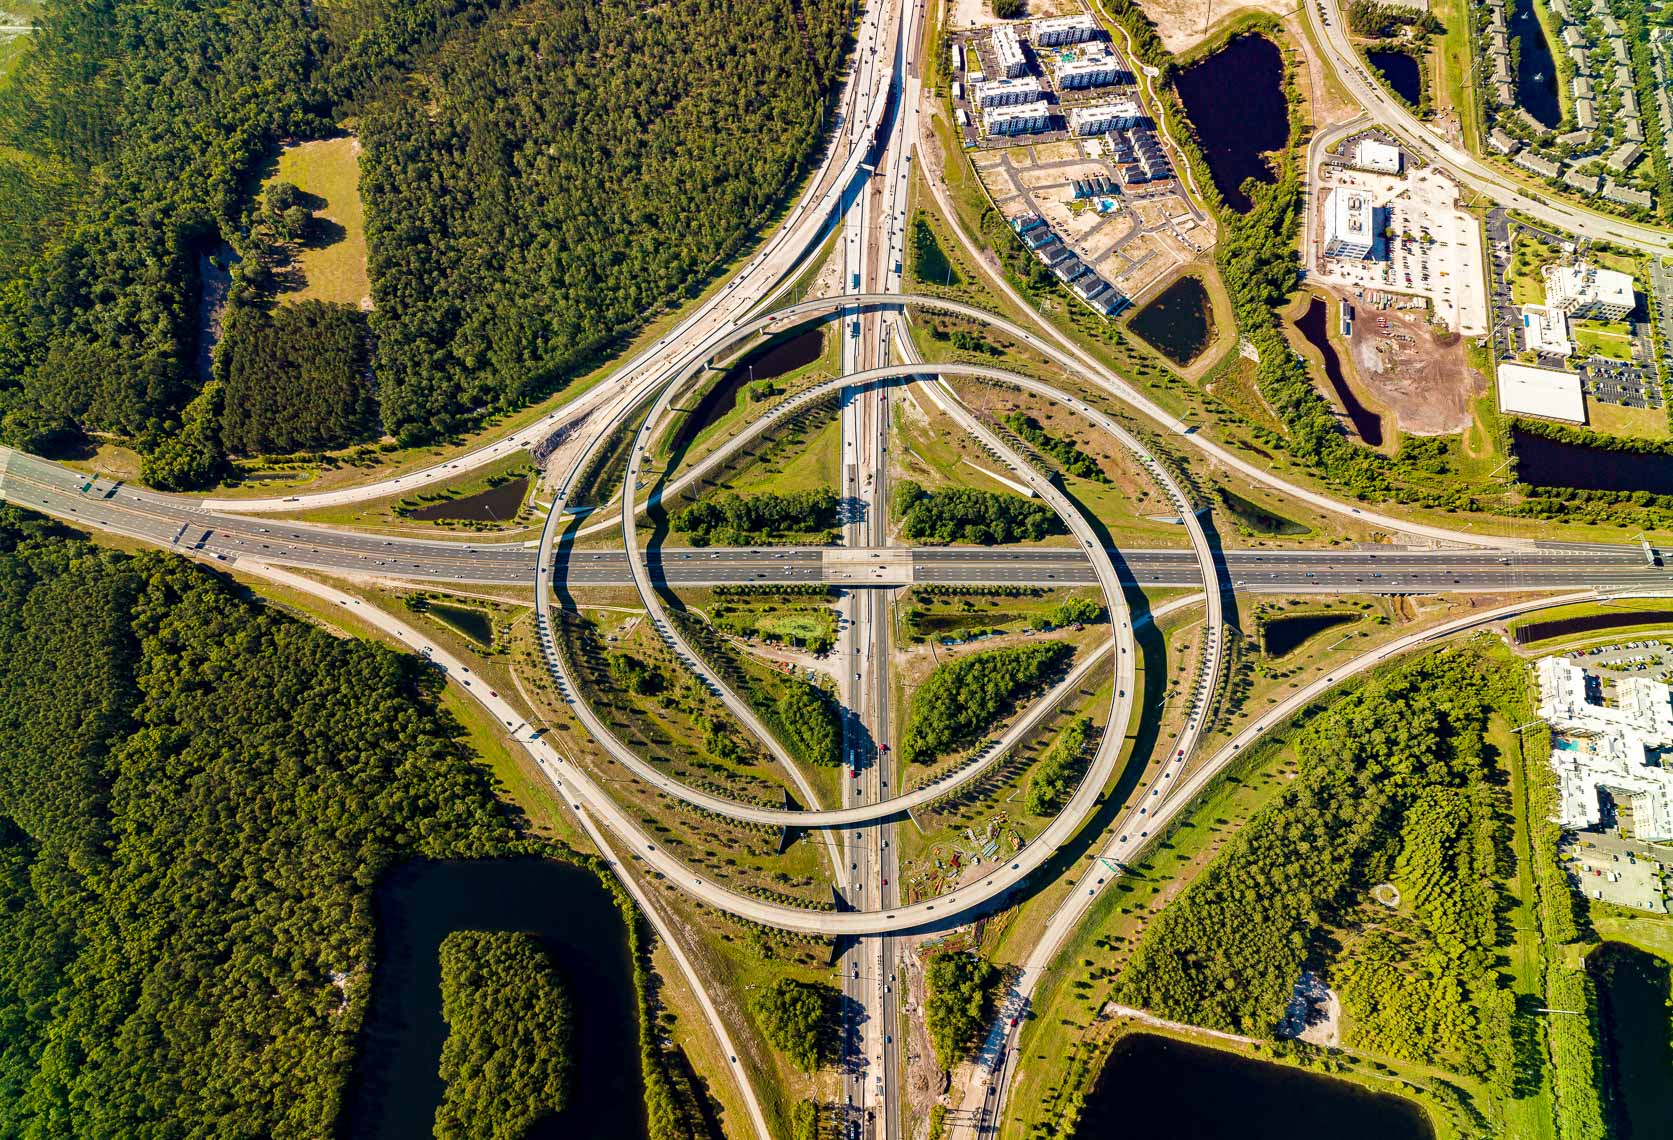 Aerial view of a major highway intersection in Jacksonville Florida